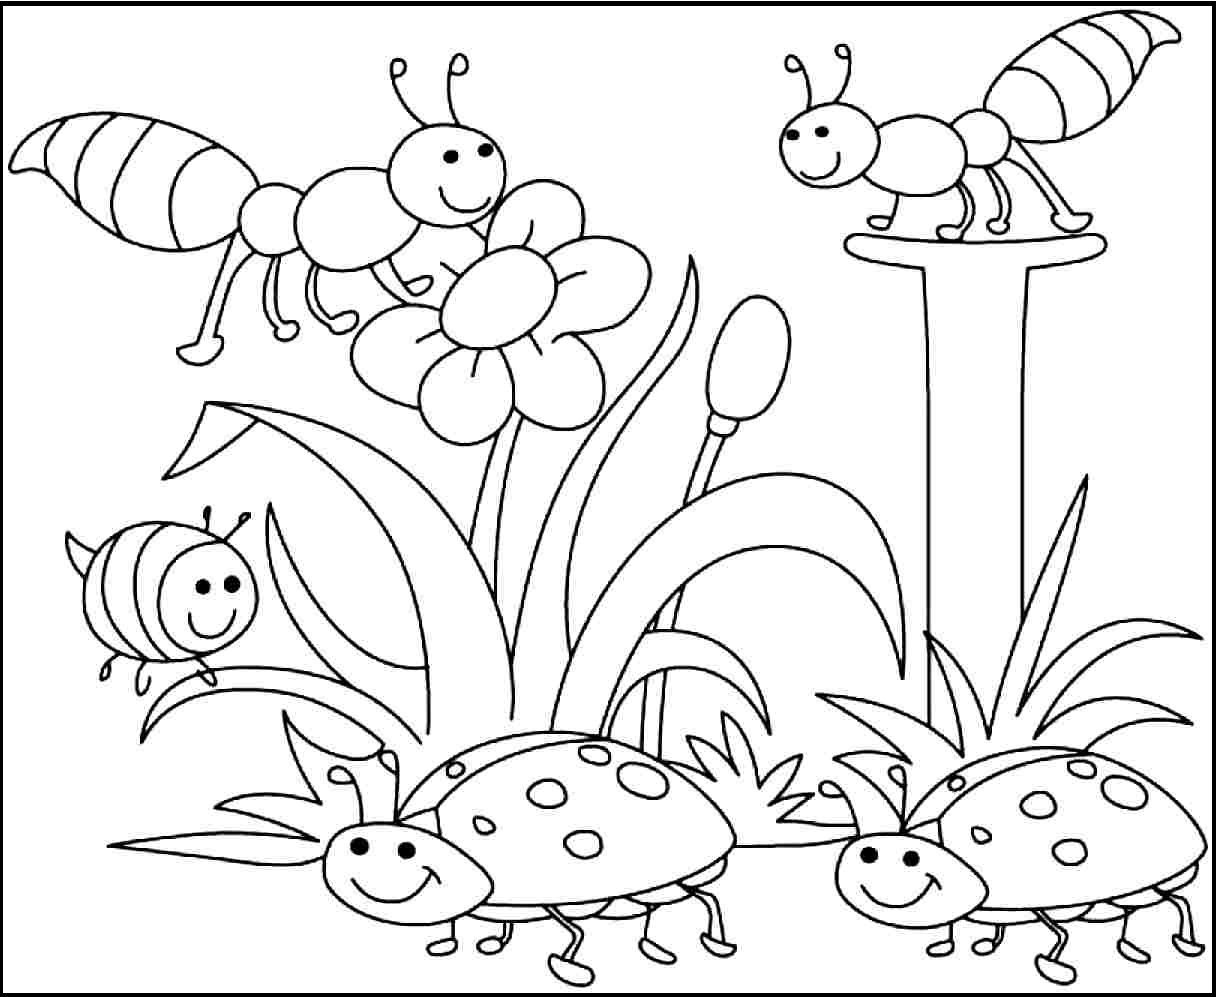 Free Spring Coloring Page Printable For Kids Spring Coloring Pages